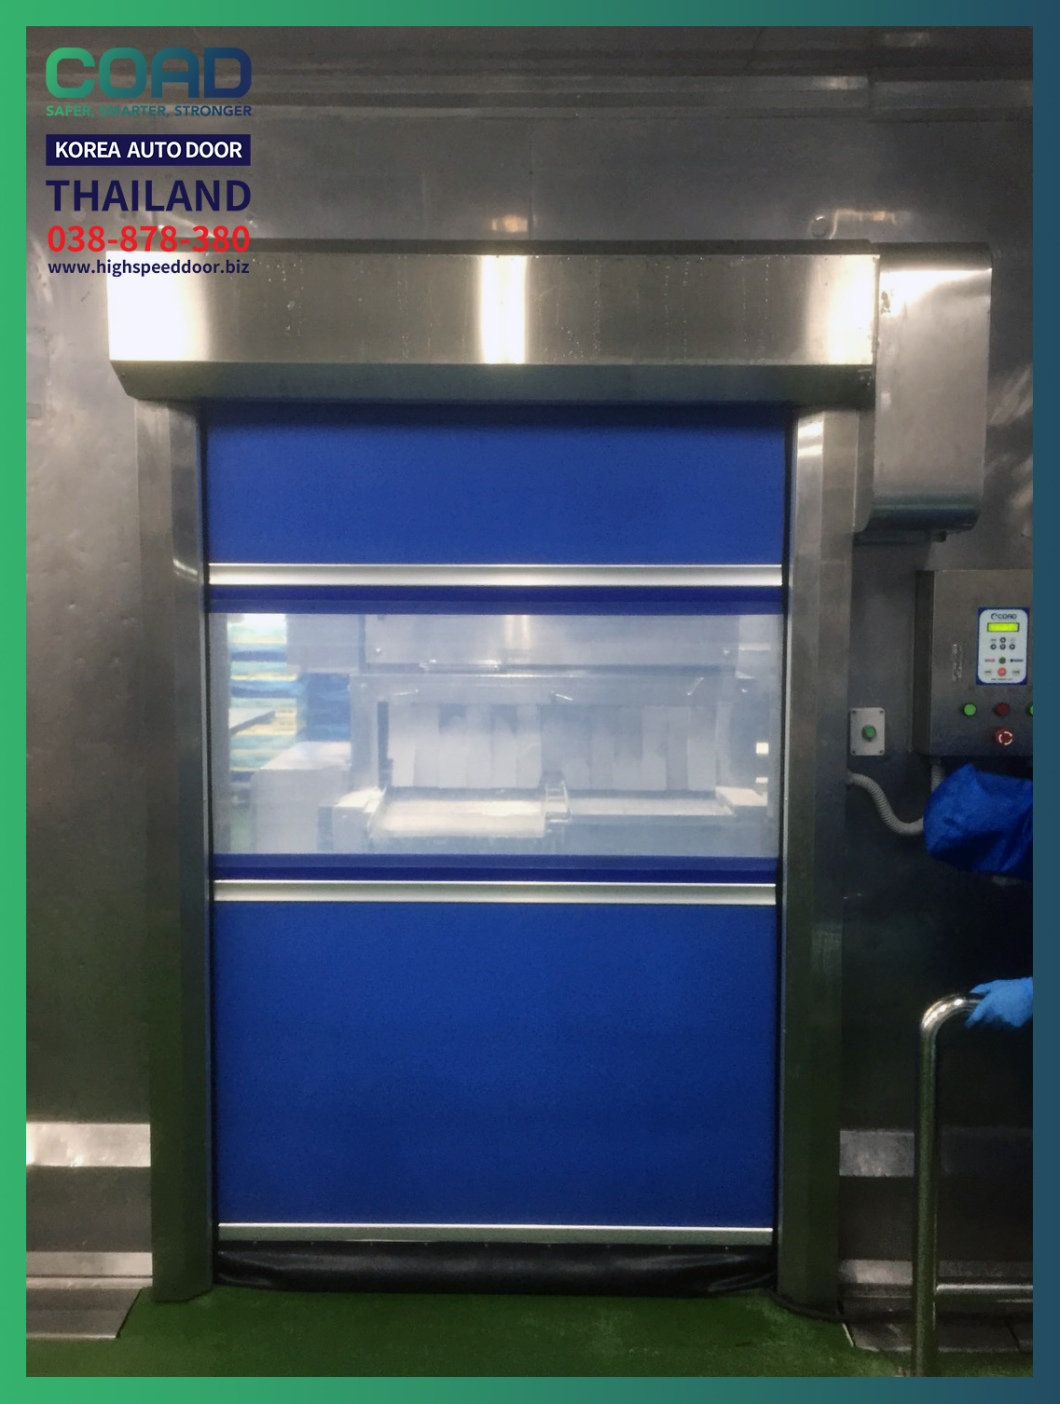 High speed door is localized with stainless